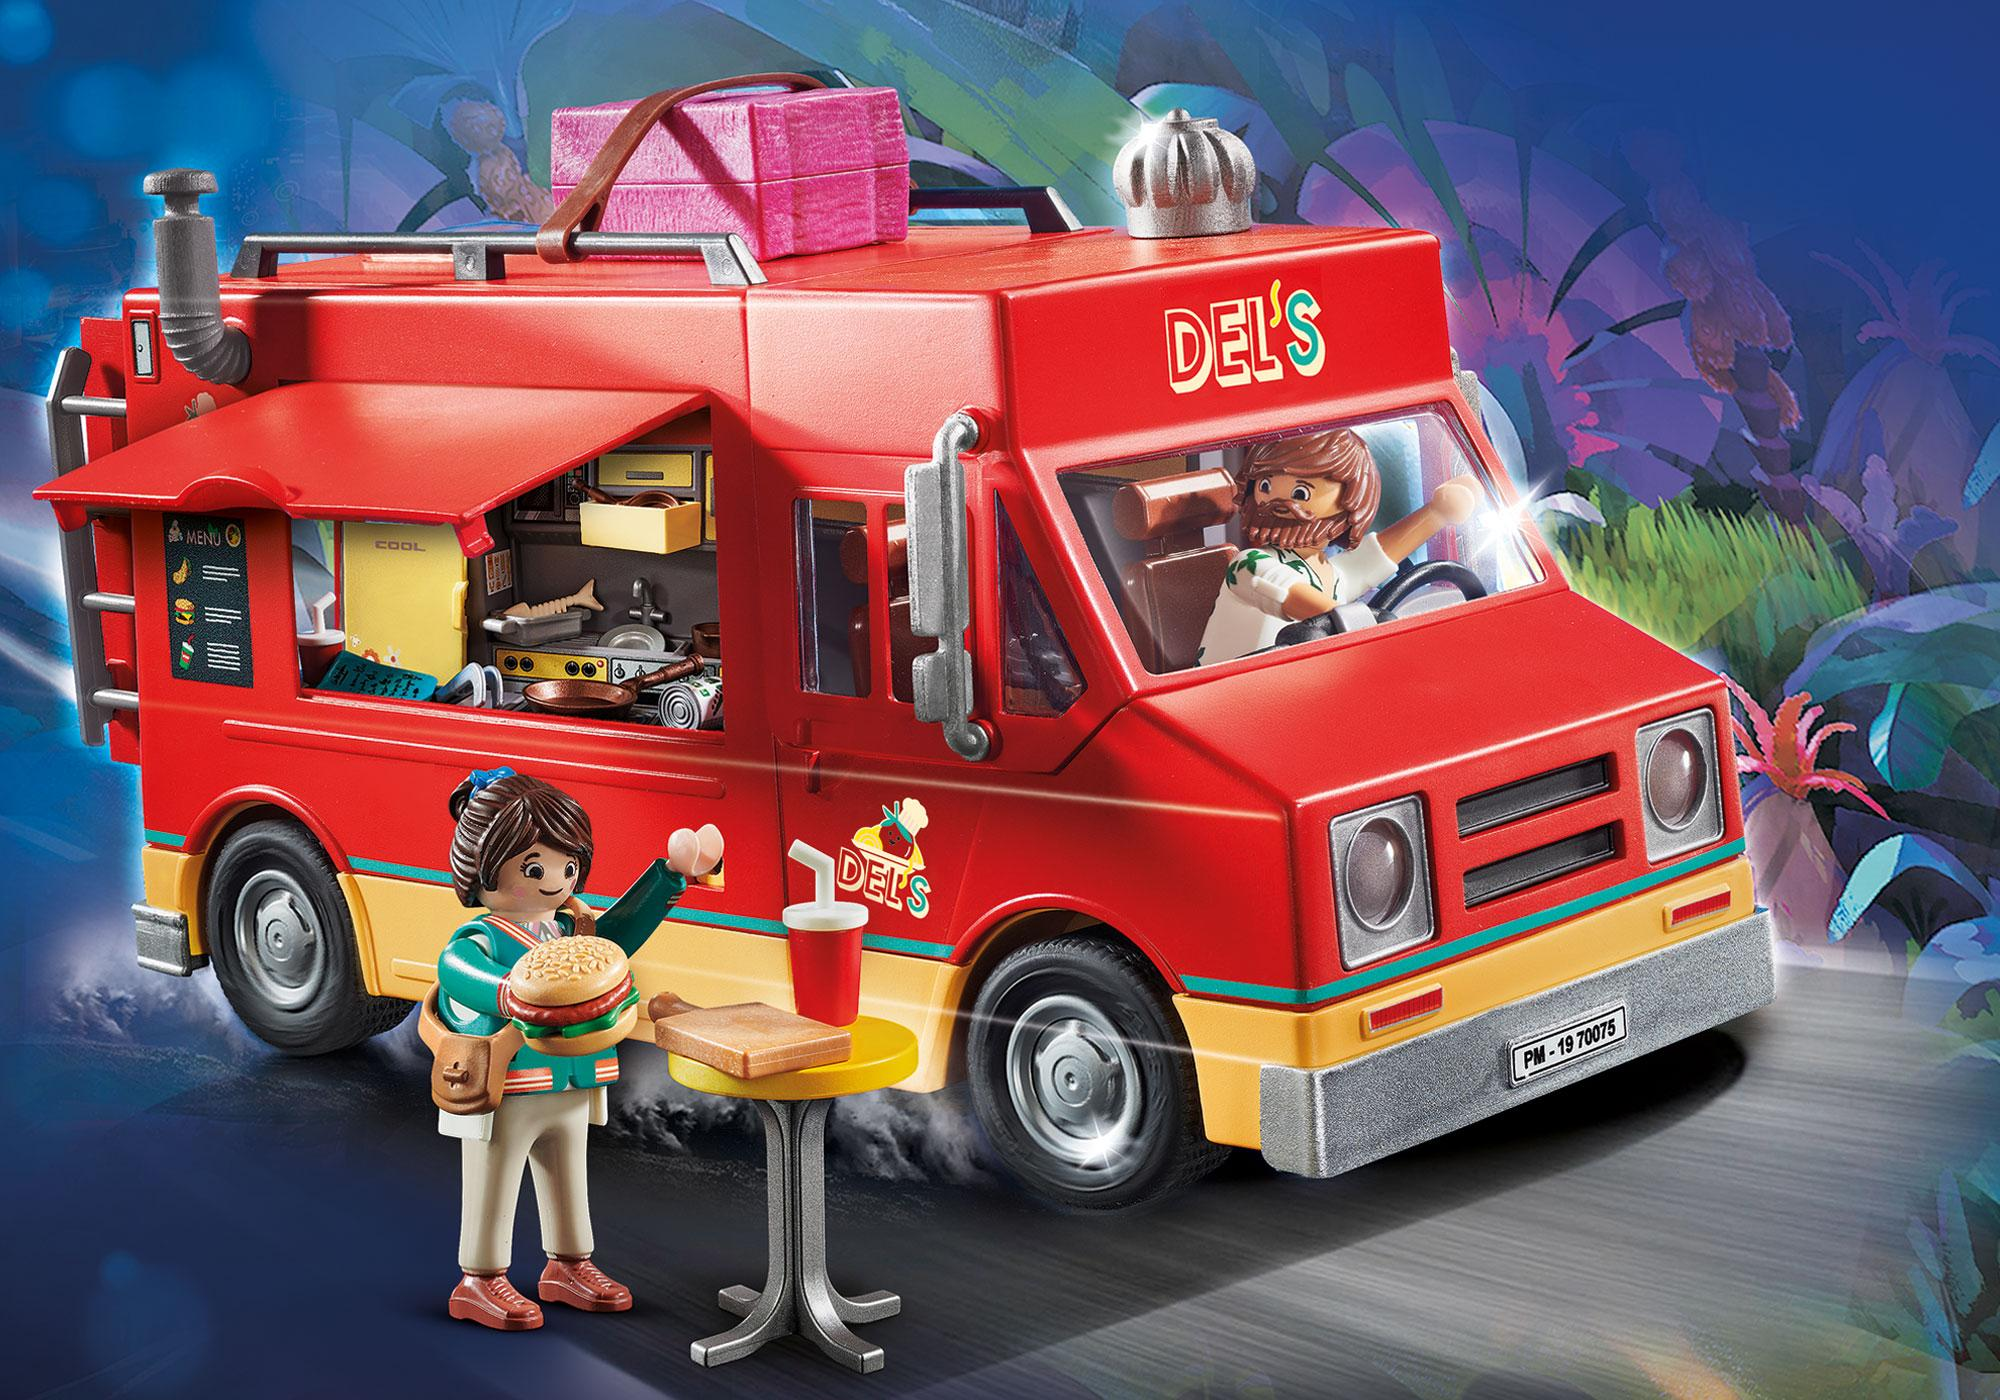 70075_product_detail/PLAYMOBIL: THE MOVIE Food Truck di Del